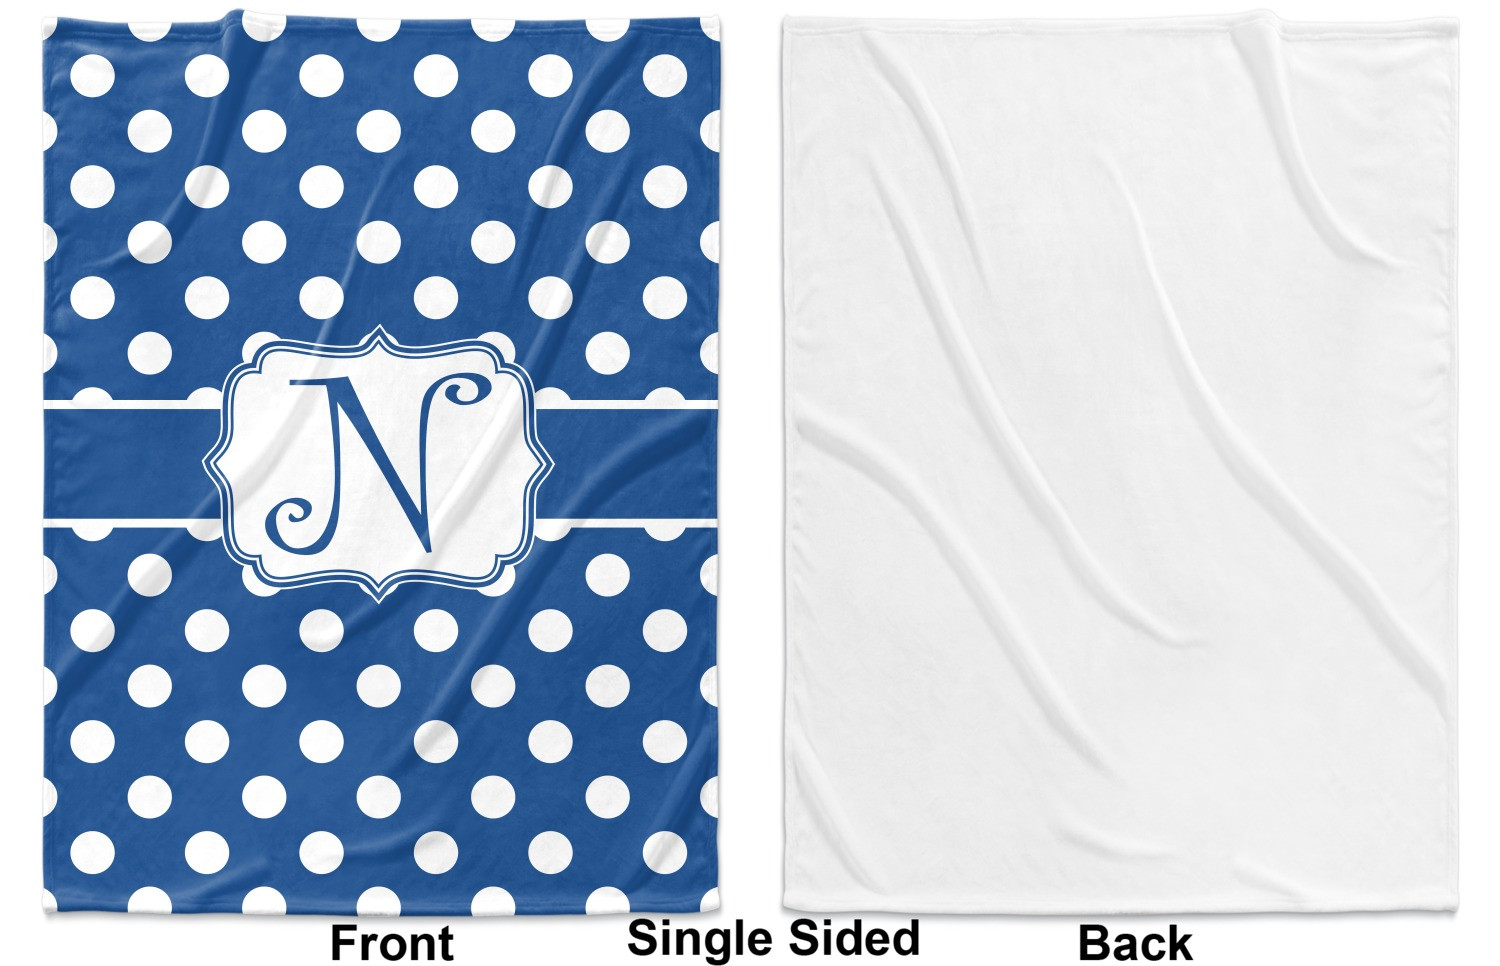 Beautiful Polka Dots Baby Blanket Personalized Polka Dot Baby Blanket Of Innovative 50 Pictures Polka Dot Baby Blanket